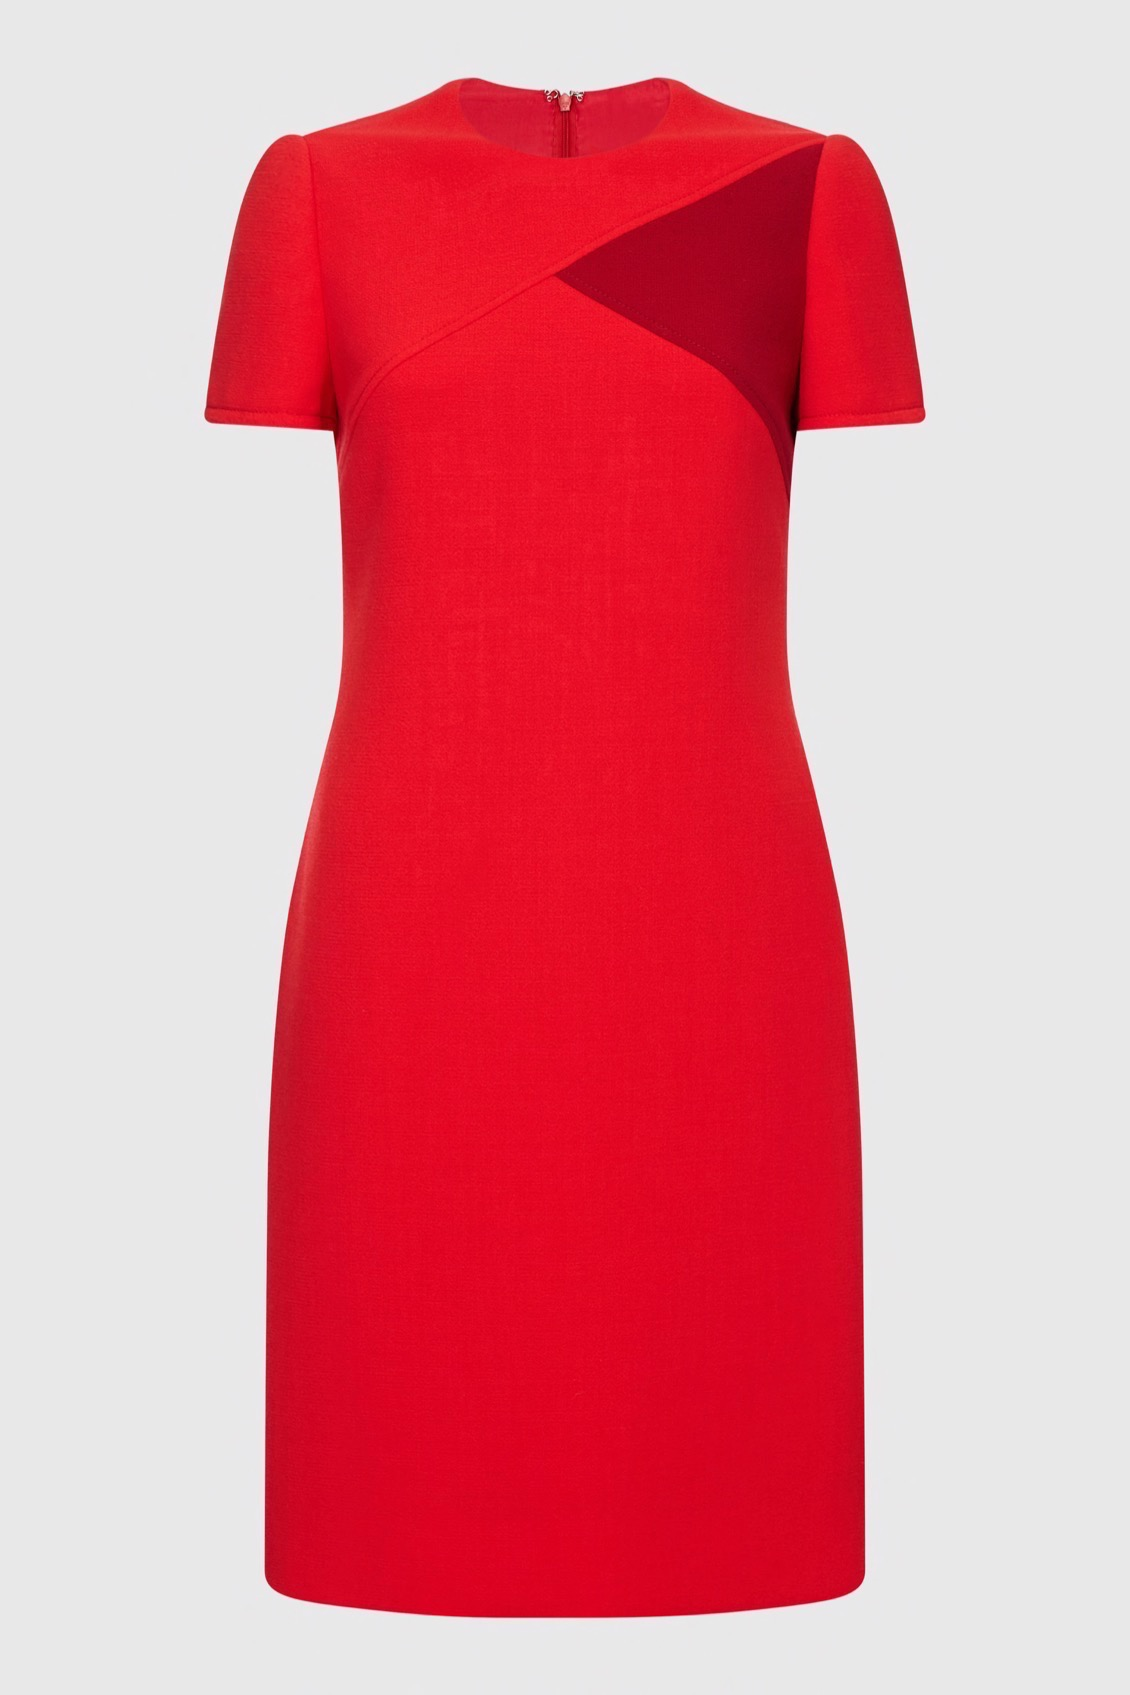 Red S_s crepe dress_F